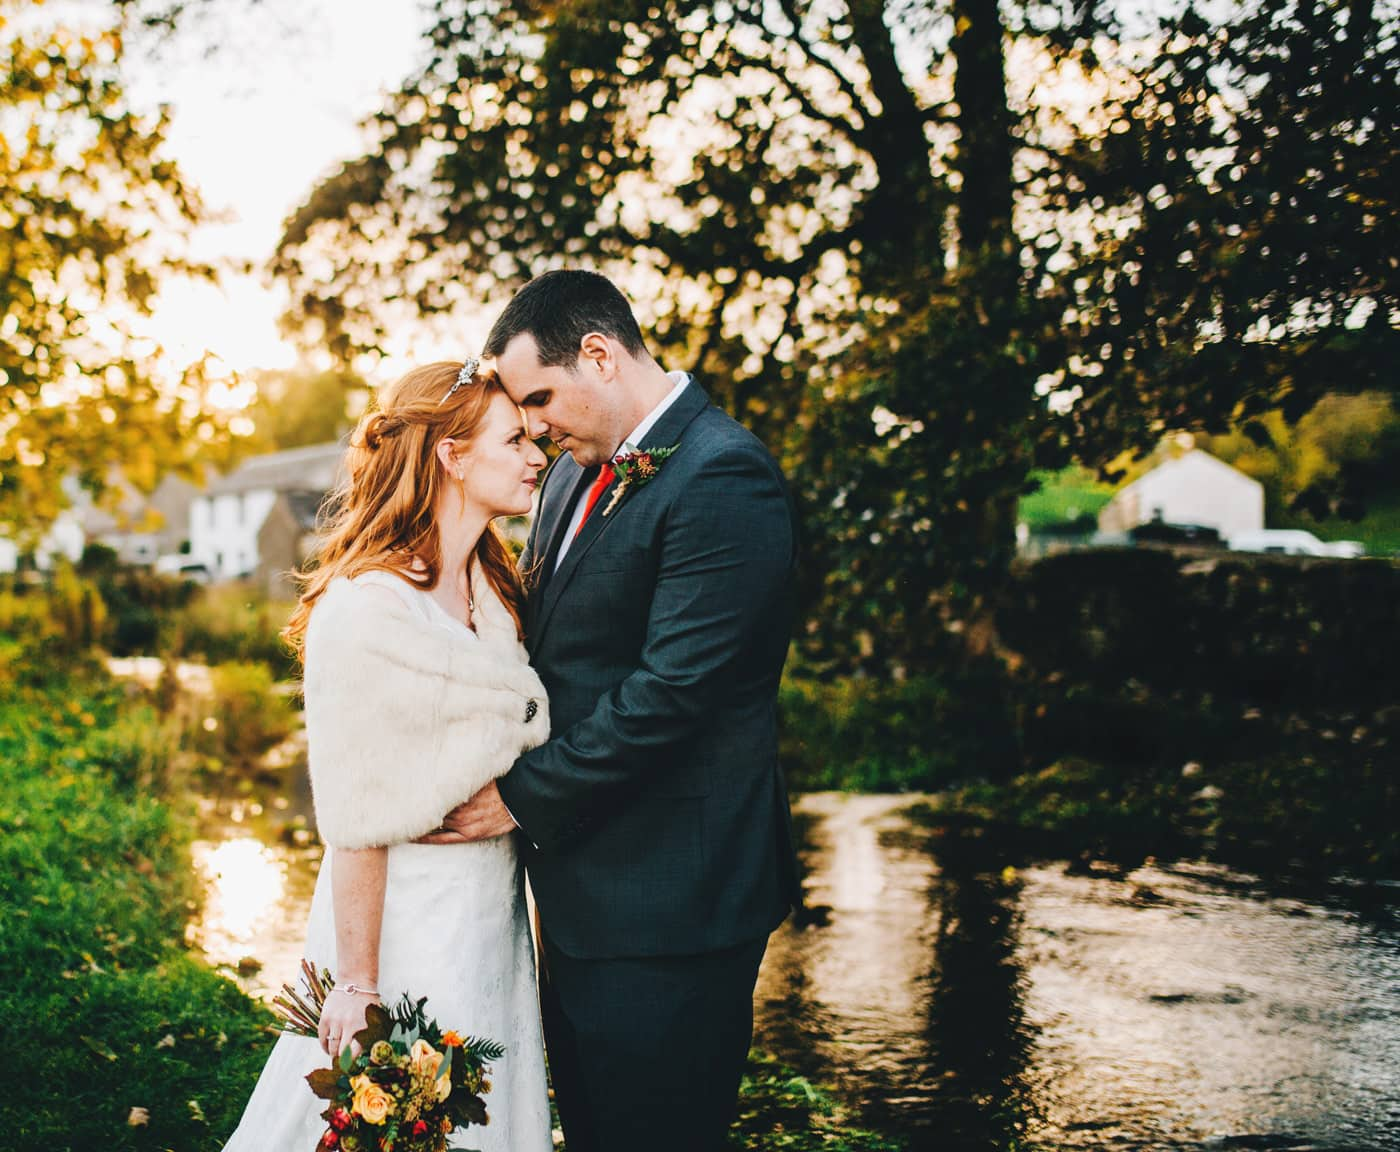 golden hour portraits - lake district wedding photographer